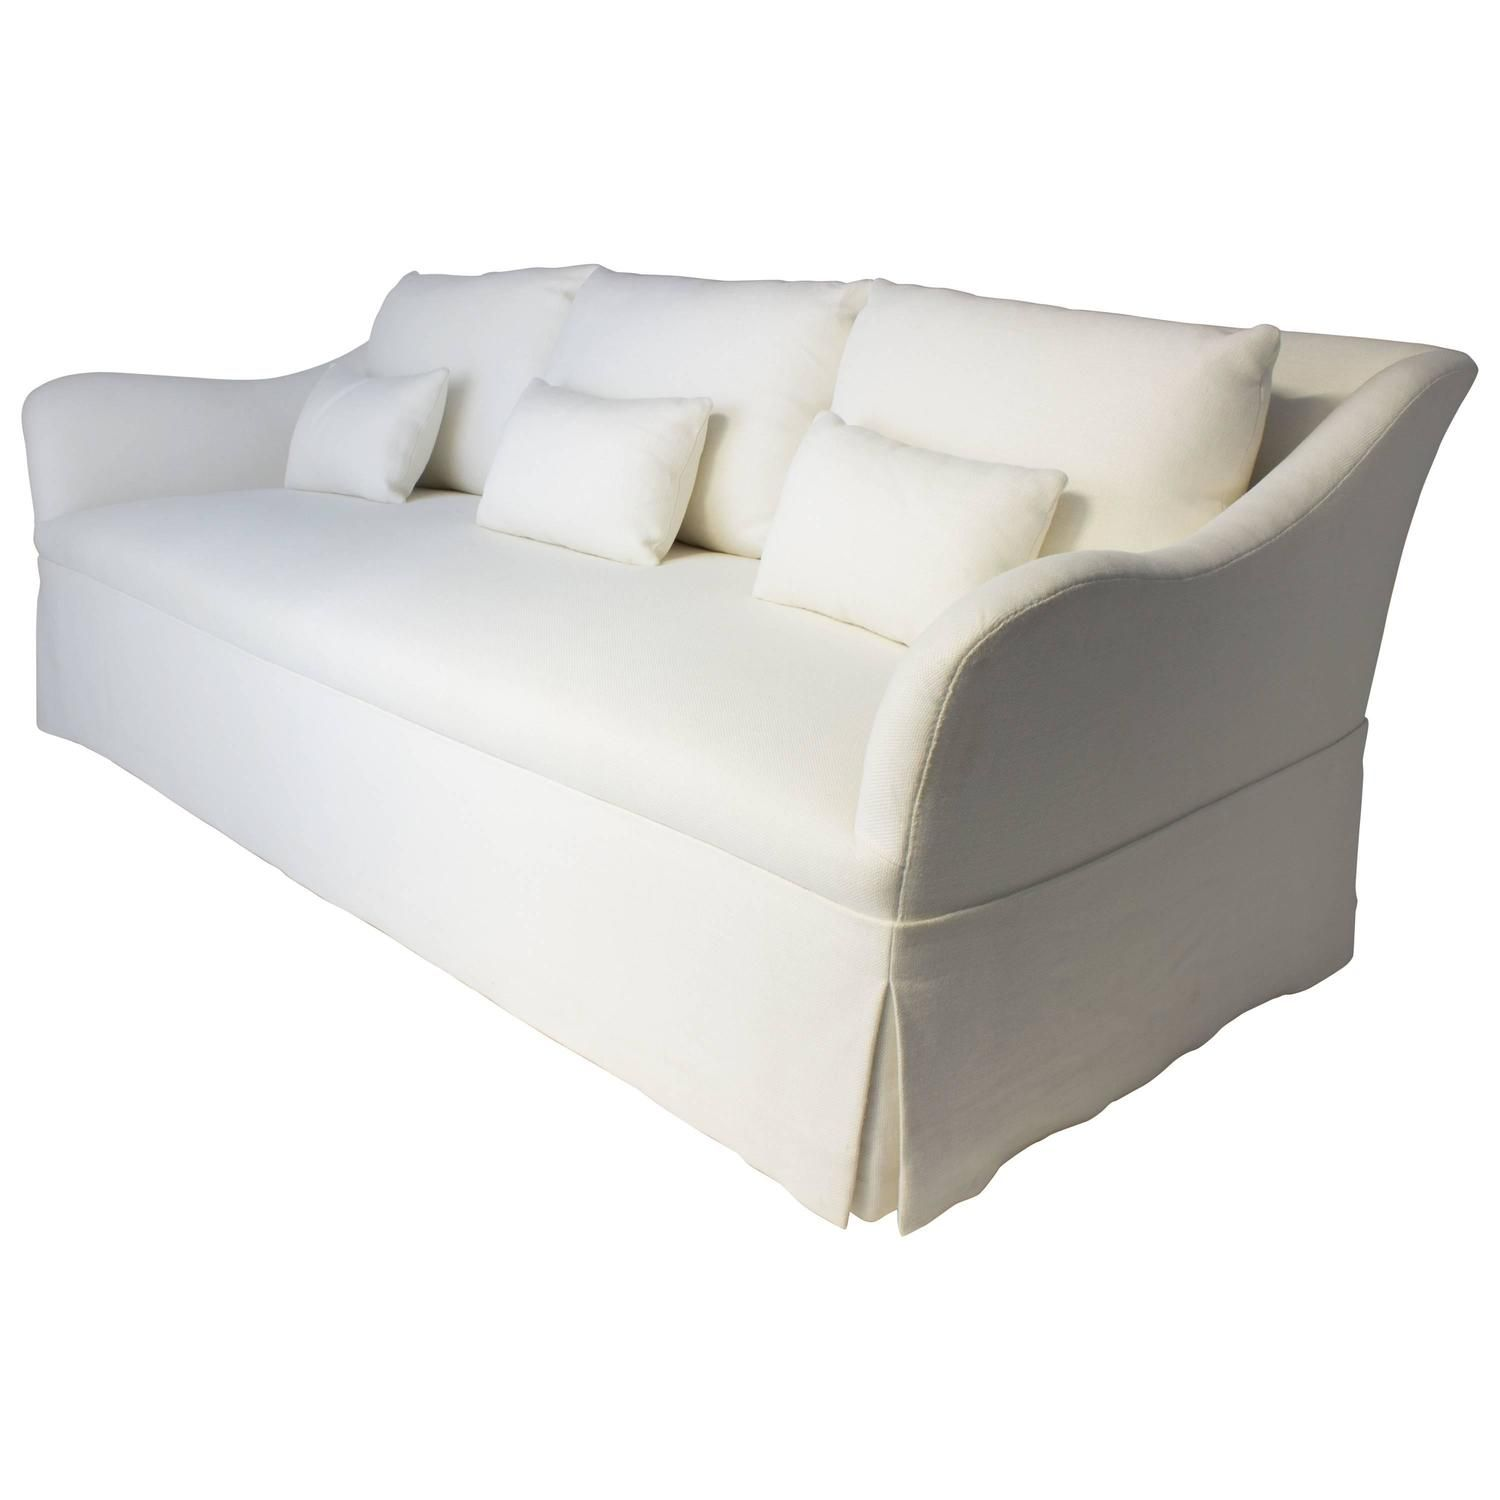 couch cushion on tufted floor cushions images astounding mesmerizing daybed stunning sofa custom